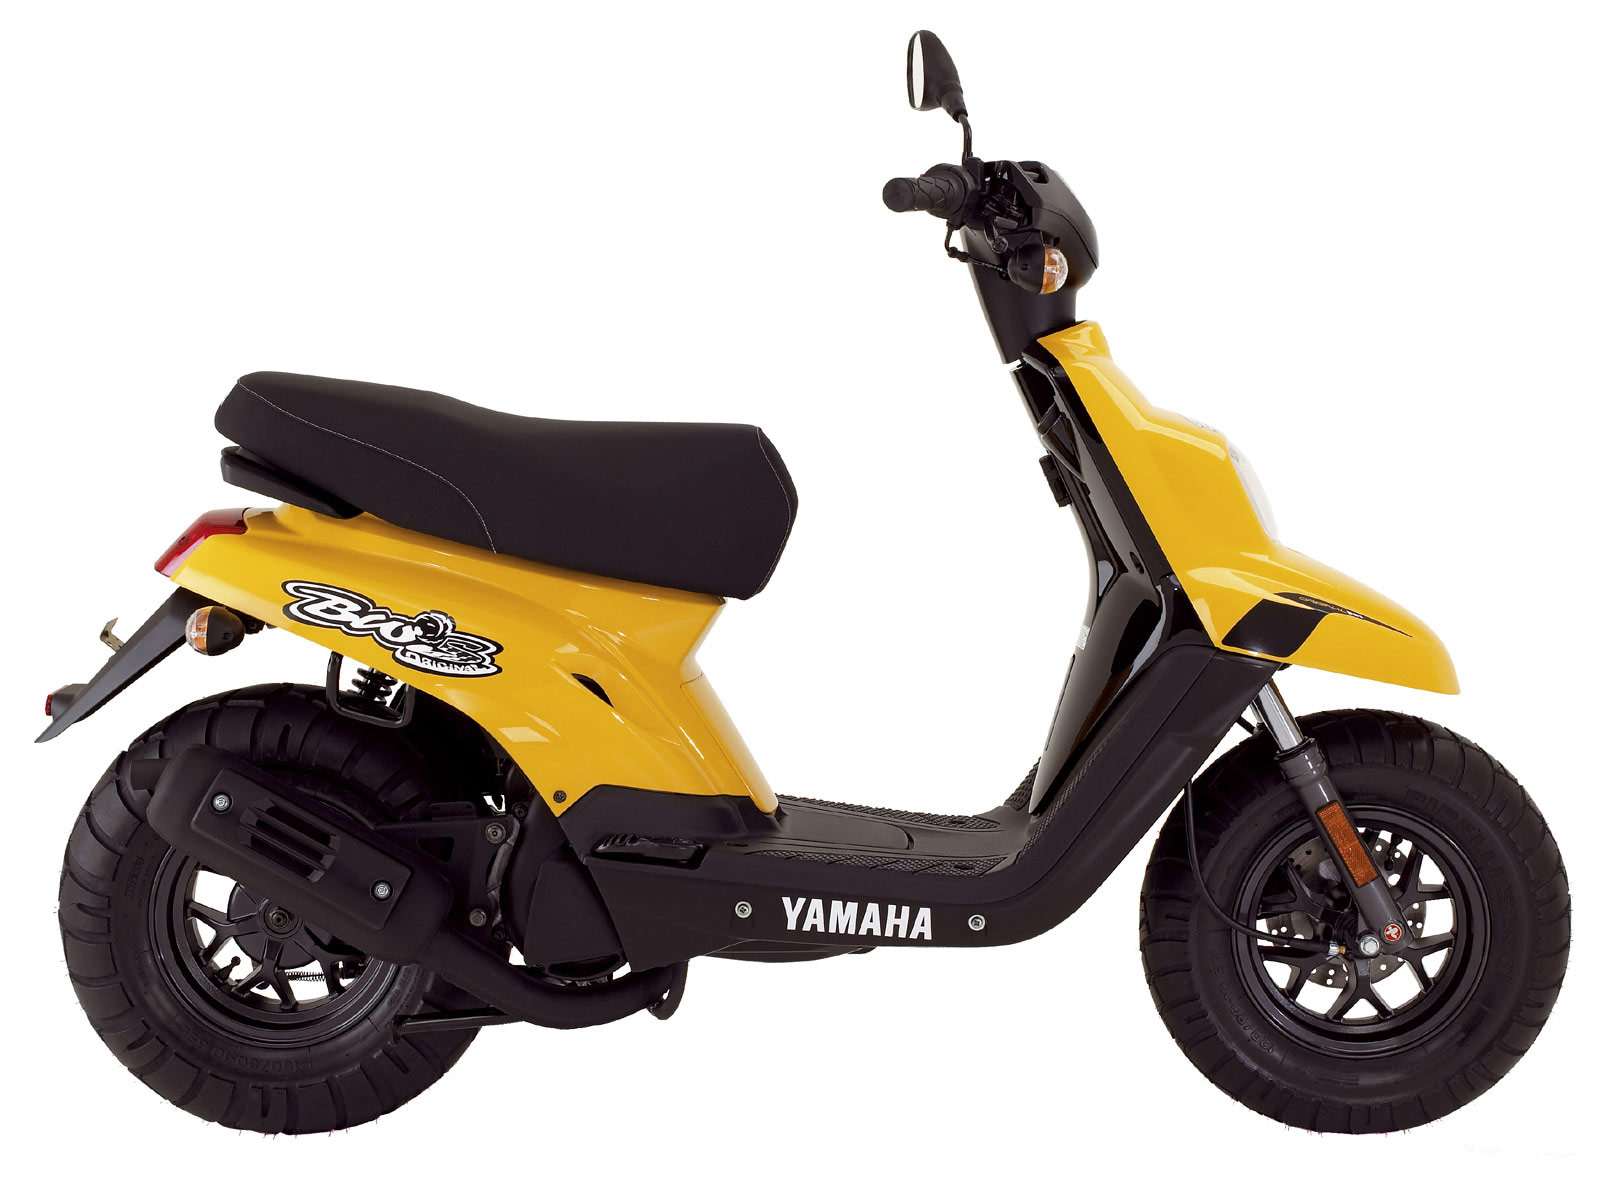 2007 YAMAHA BWs insurance informations, Scooter pictures